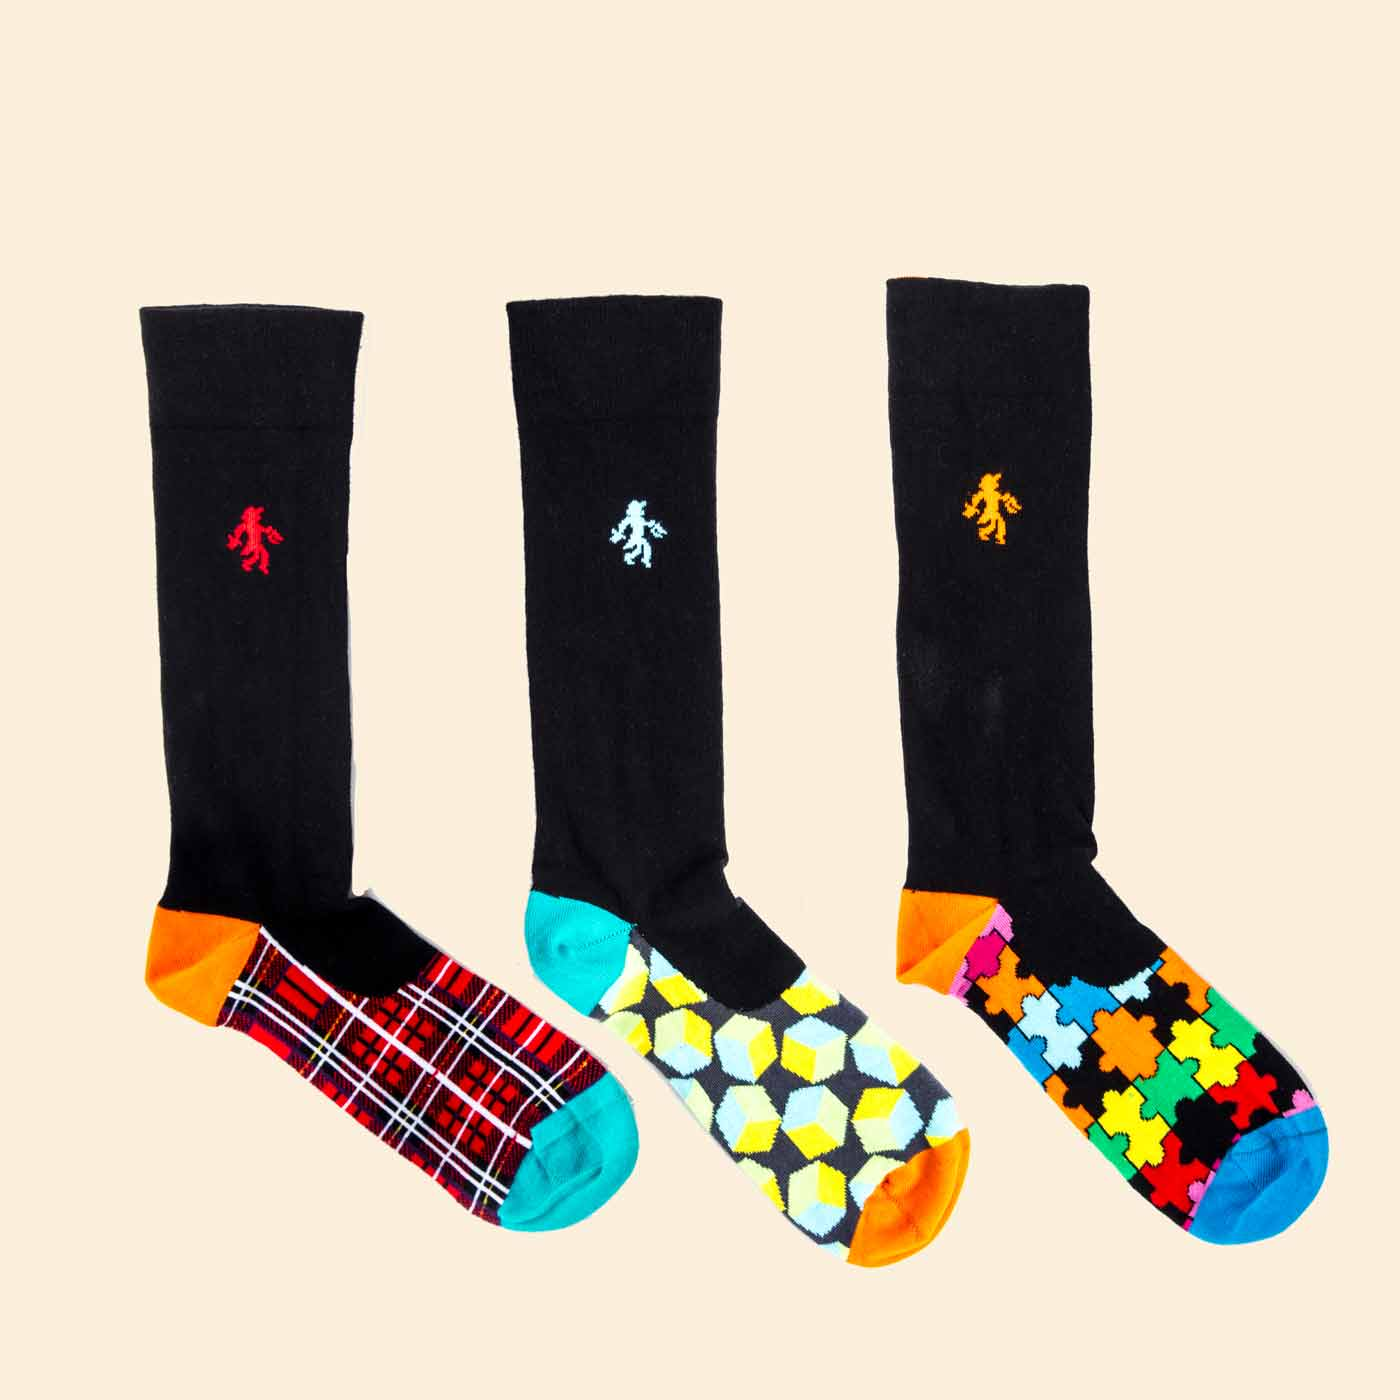 OUTLET Ambitious Trio Socks